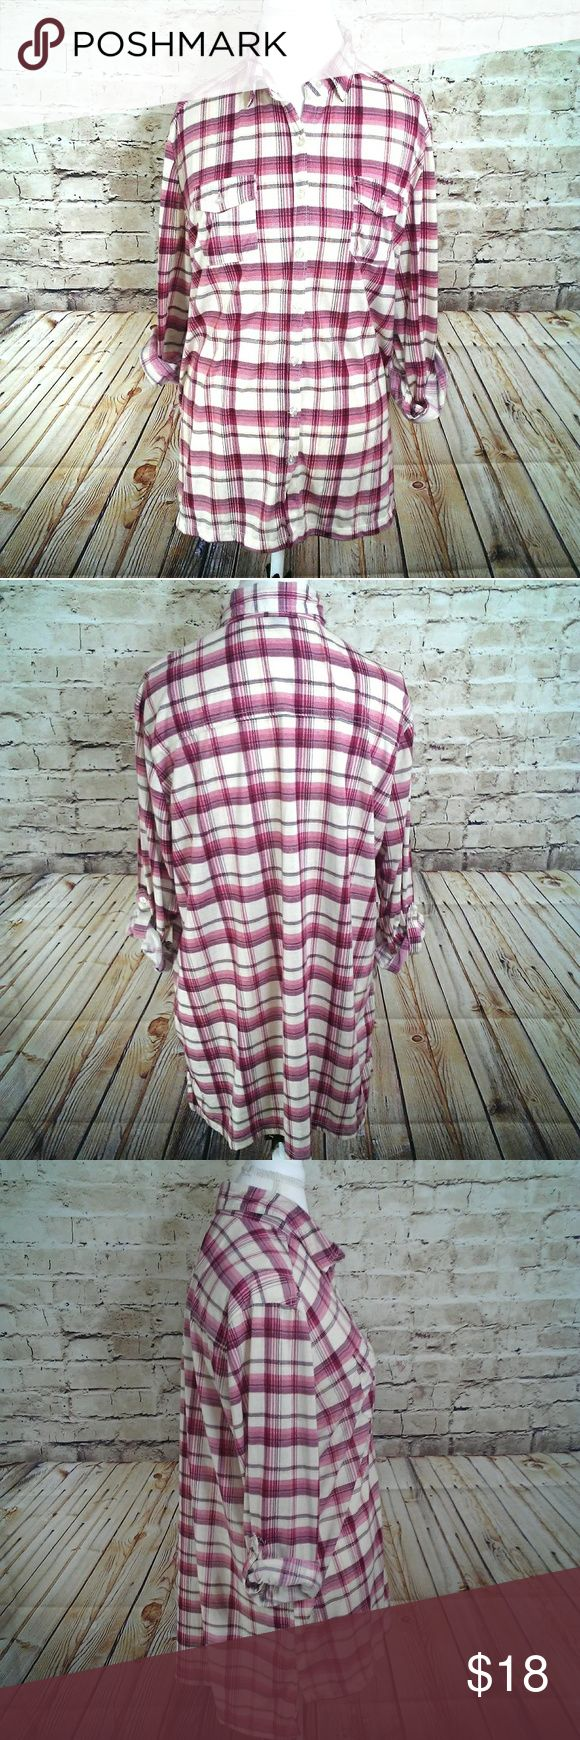 """Plaid Tunic Red/Cream Size 1X Excellent condition 23 1/2"""",Arm pit to arm pit 29"""" Length Front 32""""  Length Back. All measurements are takin lying flat and are approximate. No rips or tears. Colors may vary from screen to screen French Laundry Tops Button Down Shirts"""